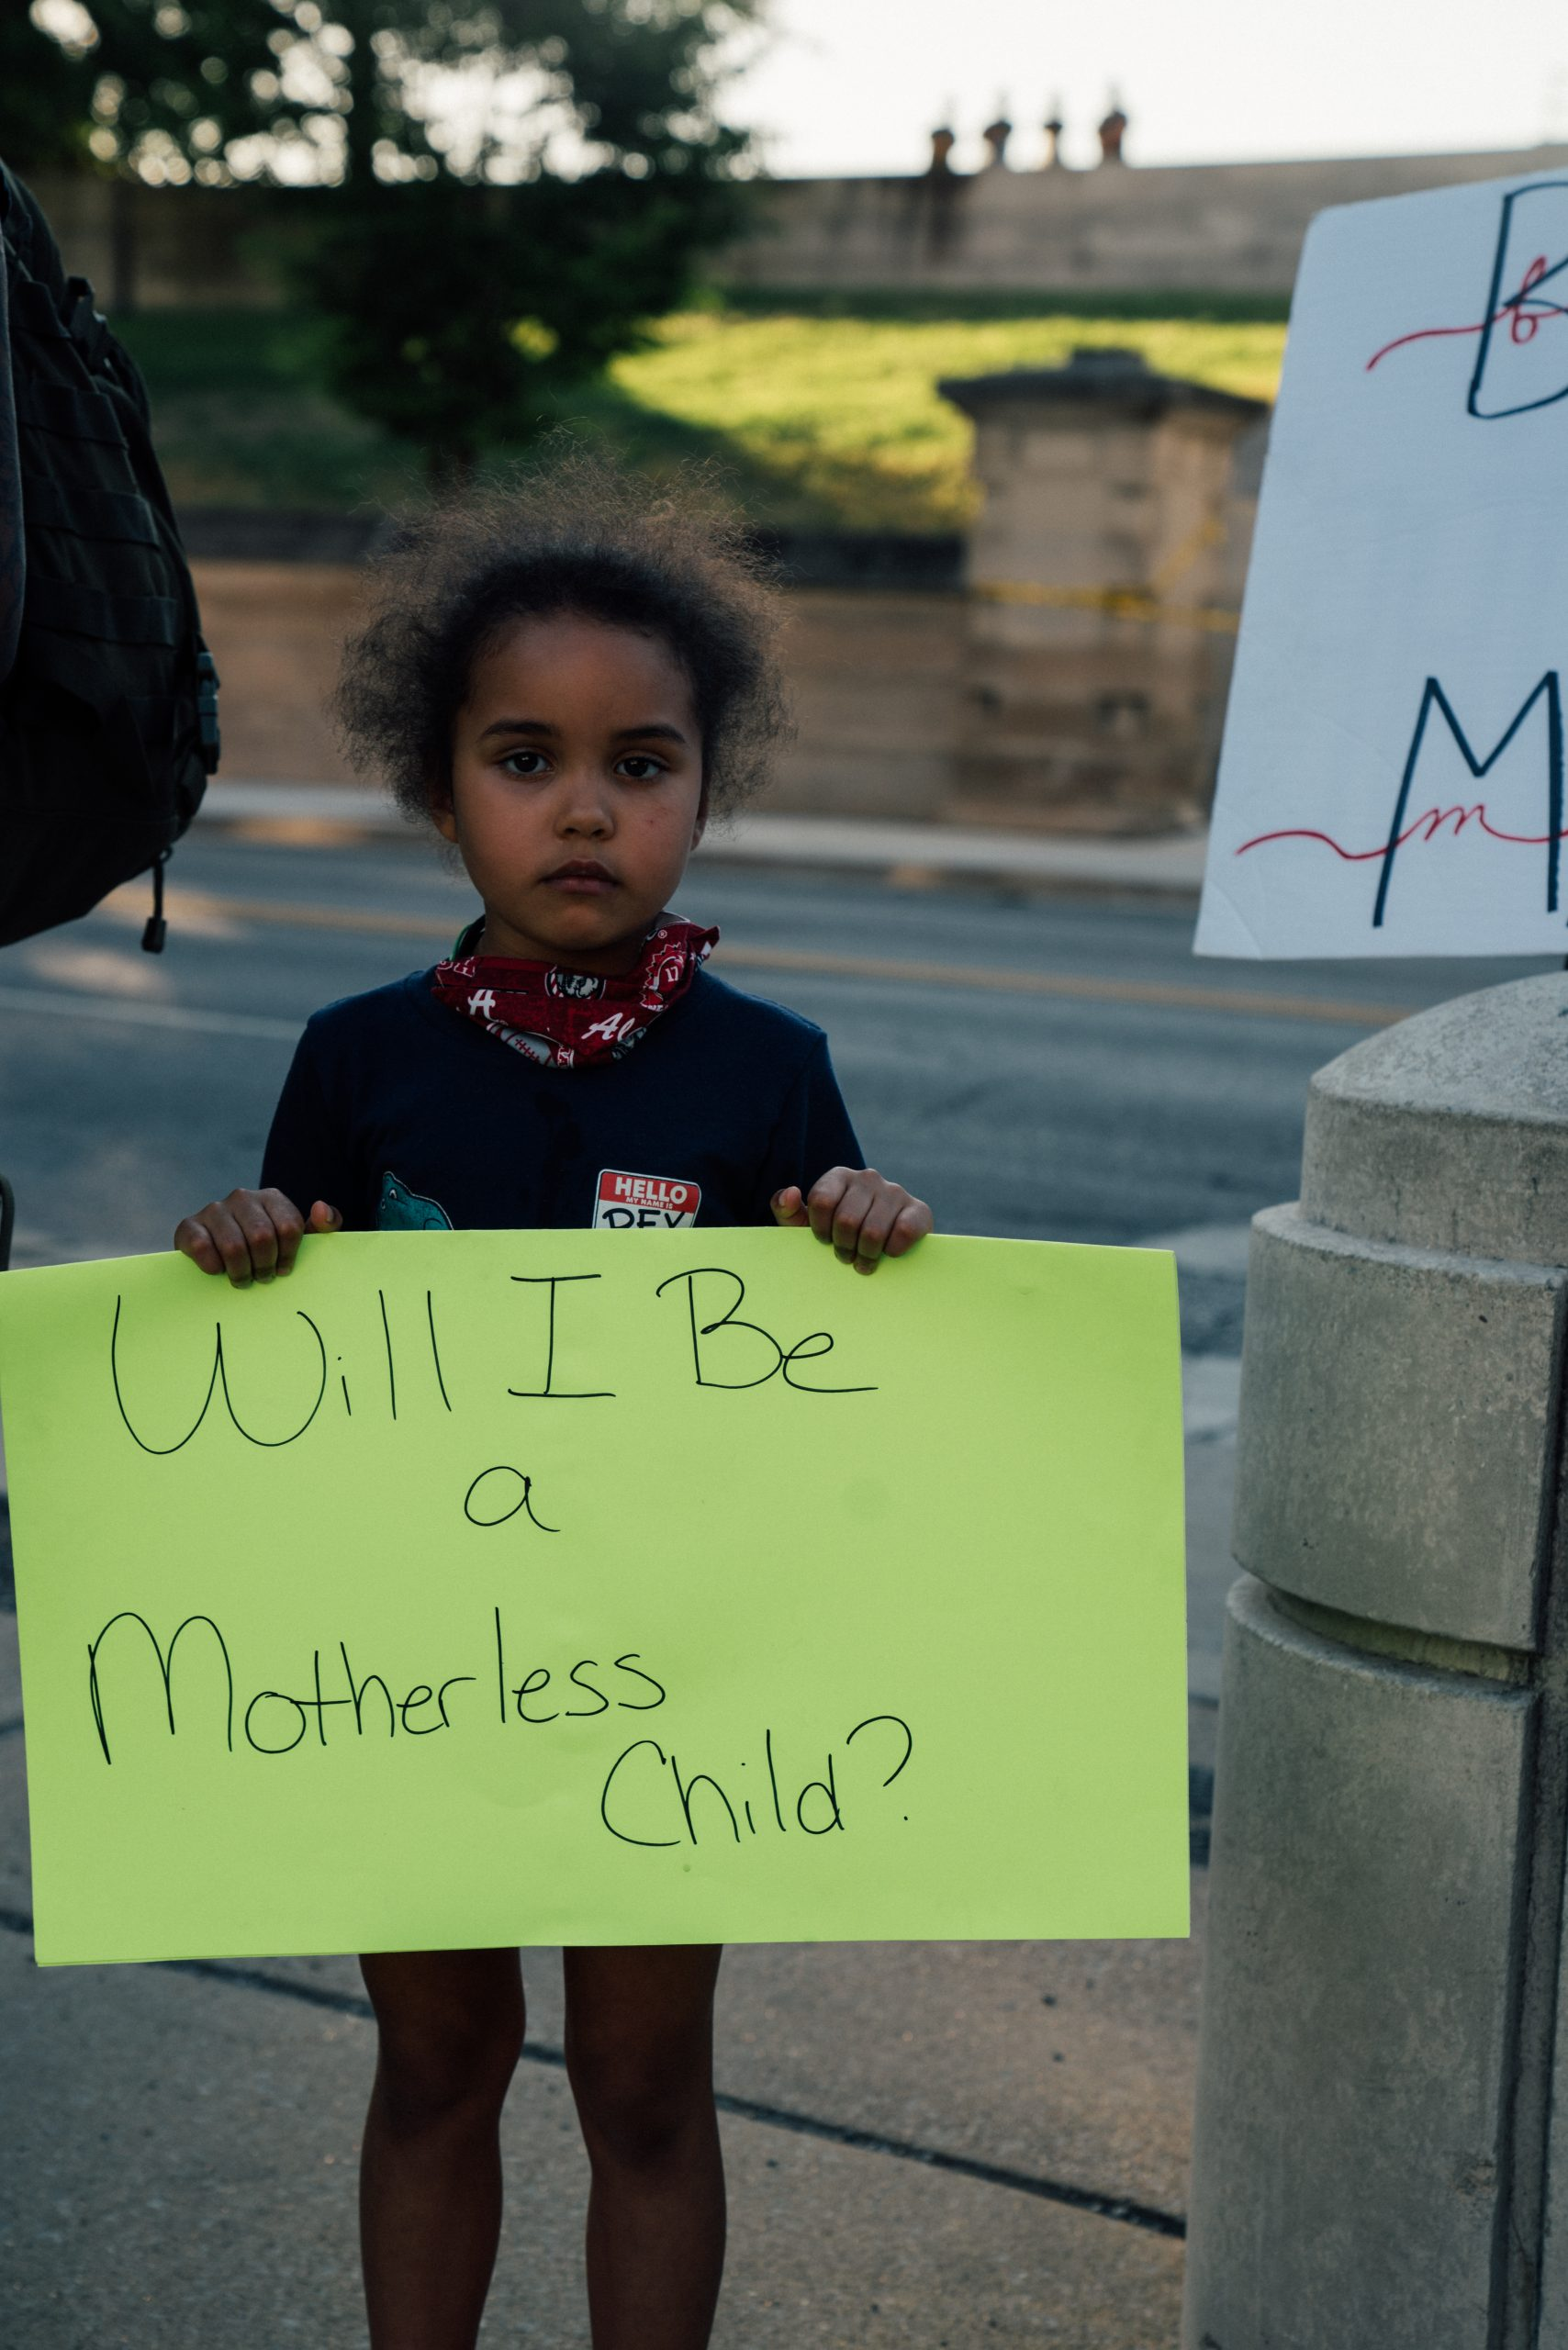 Nashville, Tenn., June 1 - A child participates in the vigil for George Floyd. (Photo: Alex Kent)